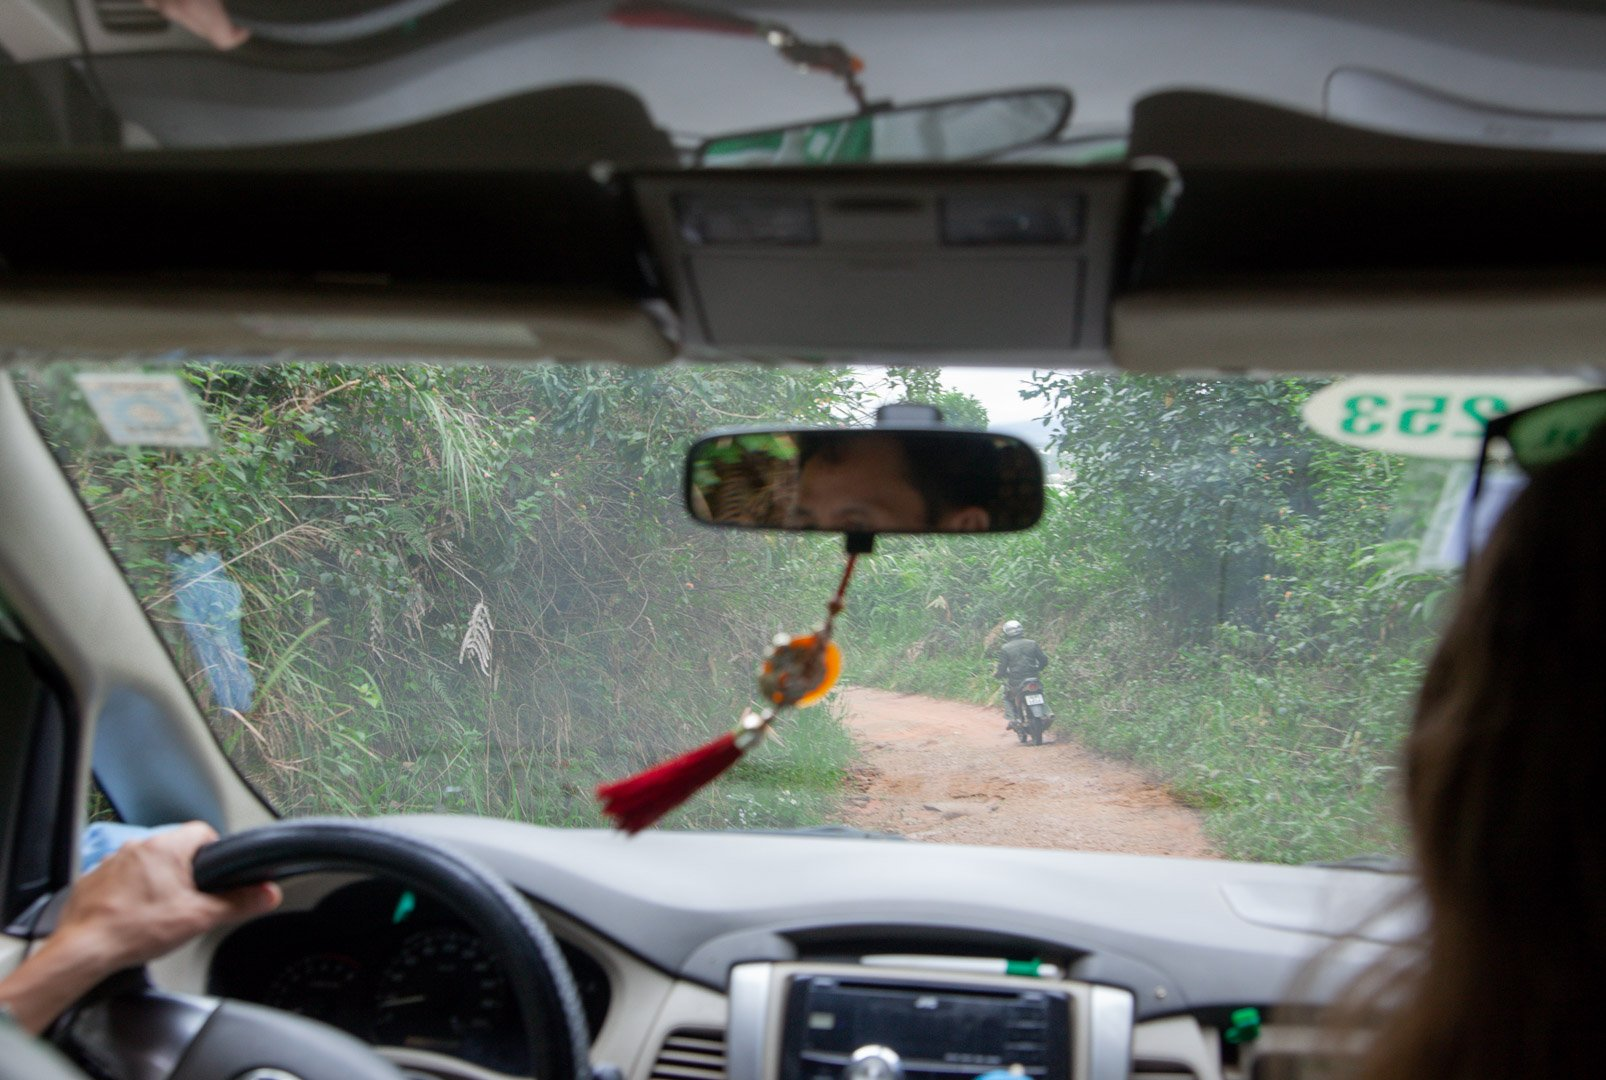 From the back seat of the taxi, we can see the coffee farmer on his motorbike ahead on the dirt road